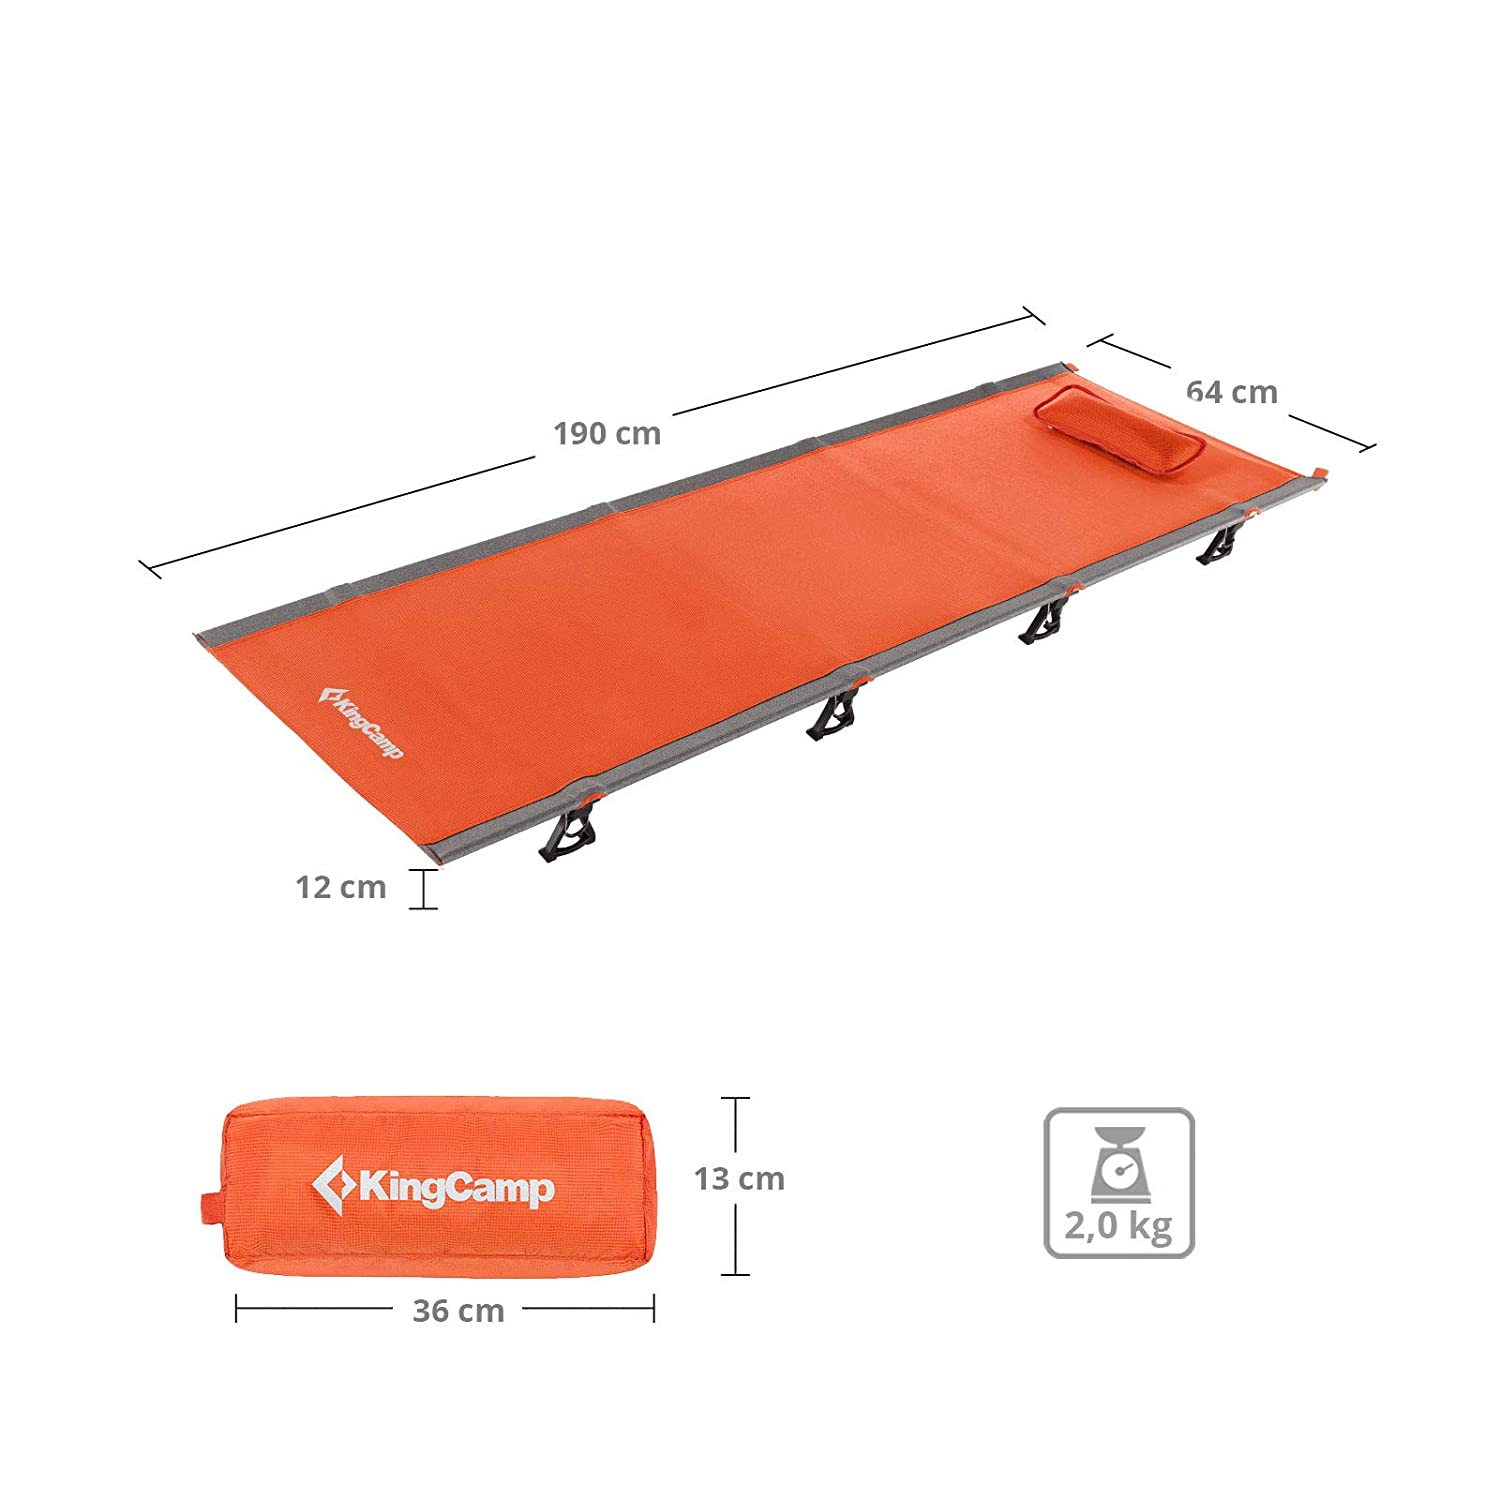 KingCamp Ultralight Folding Portable Camping Cot Bed with Weight Capacity 120 Kg for Indoor Outdoor Camping Beach Garden Orange